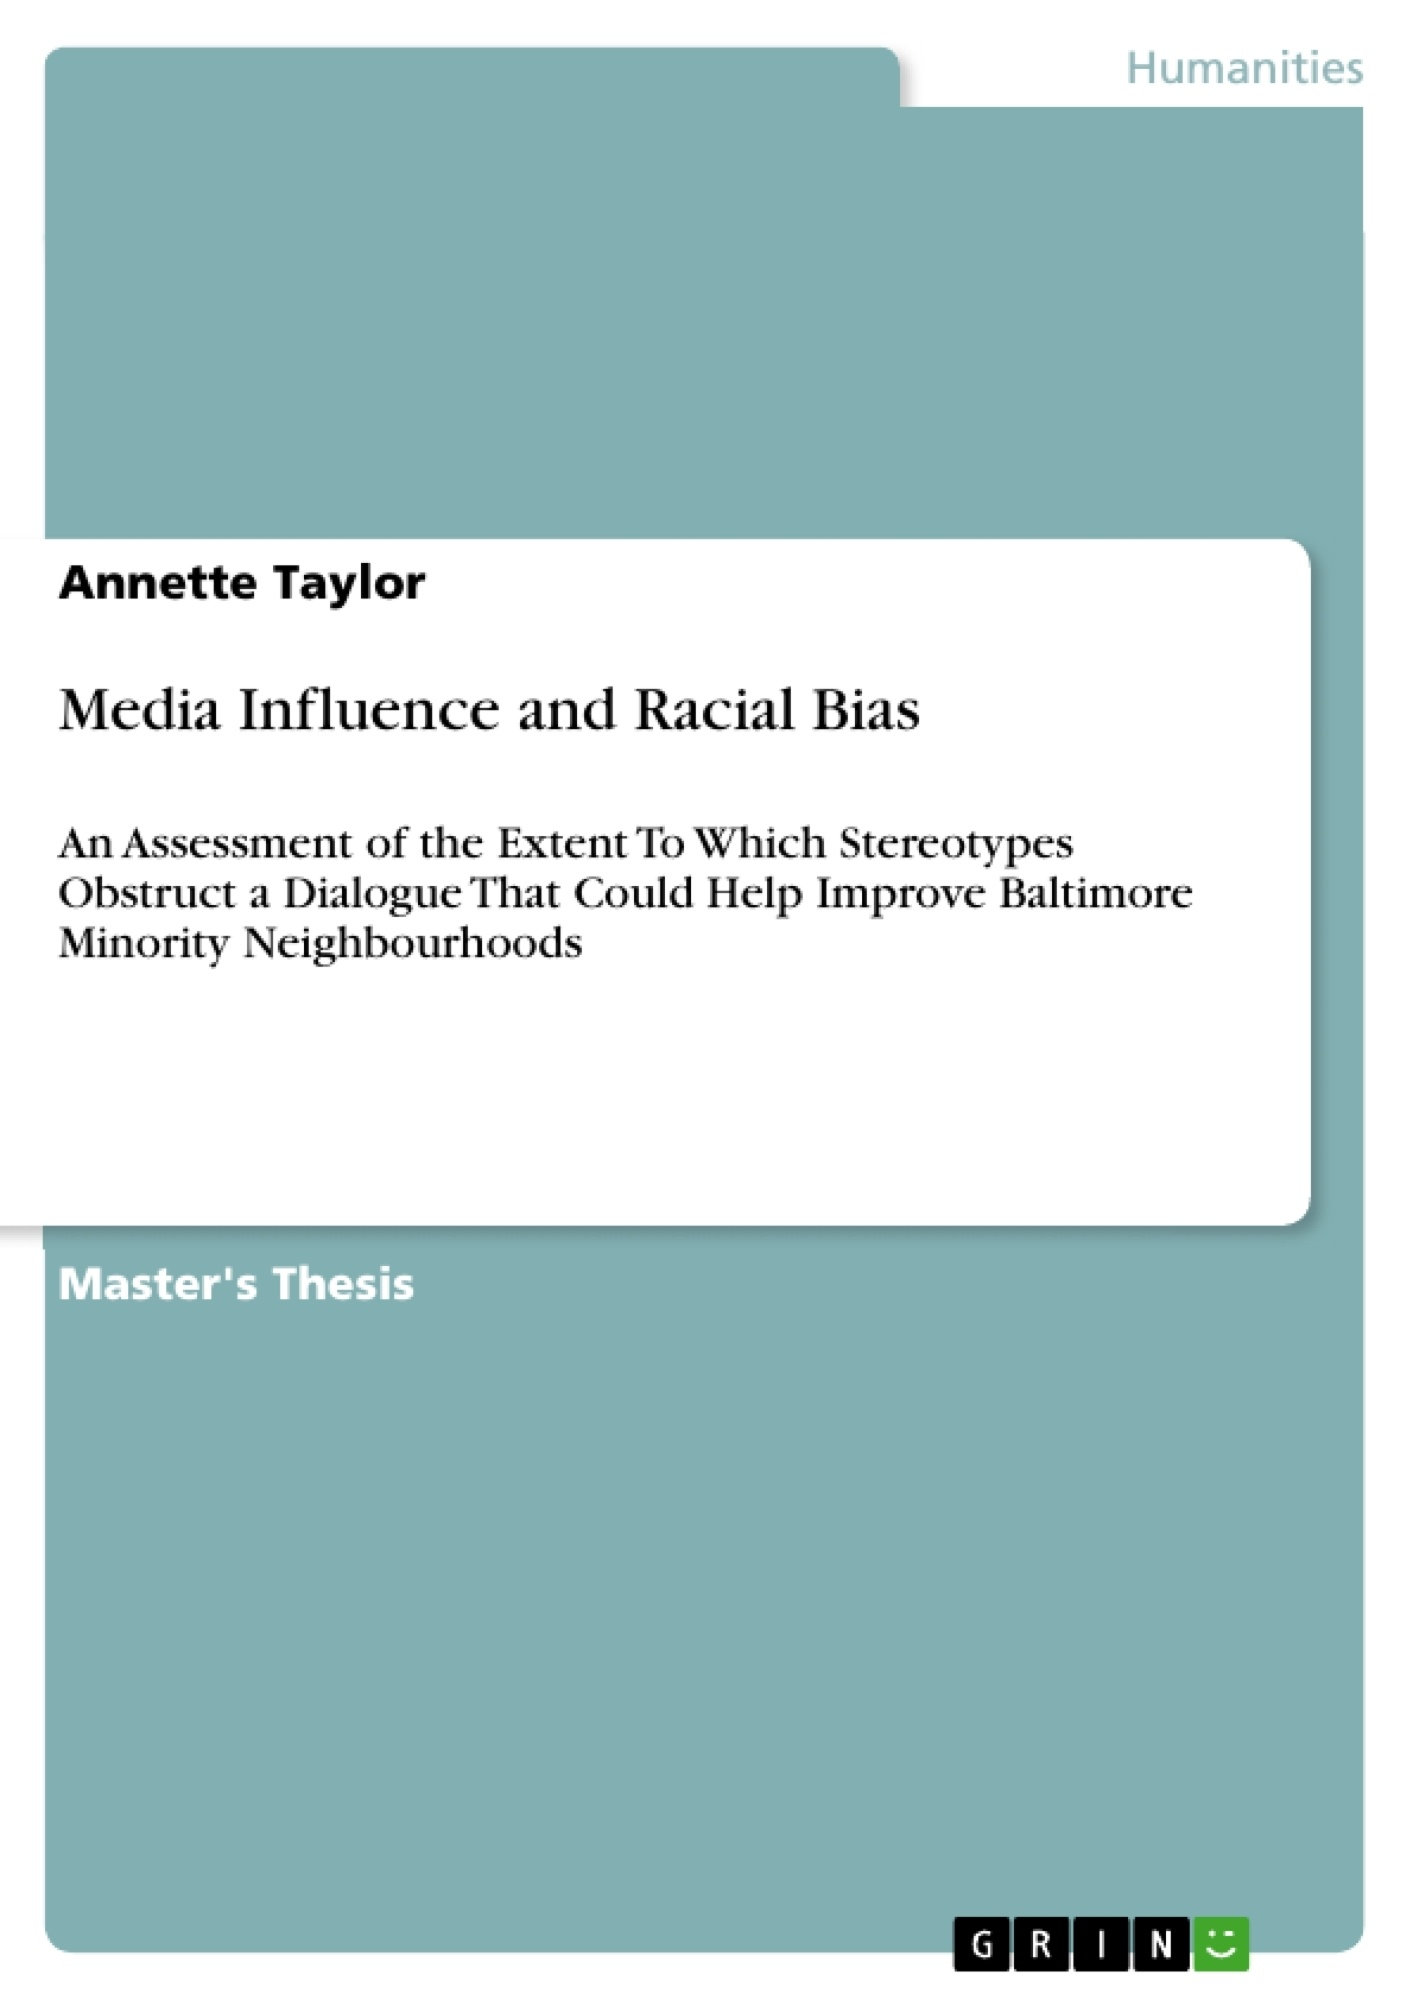 media influence and racial bias publish your master s thesis media influence and racial bias publish your master s thesis bachelor s thesis essay or term paper